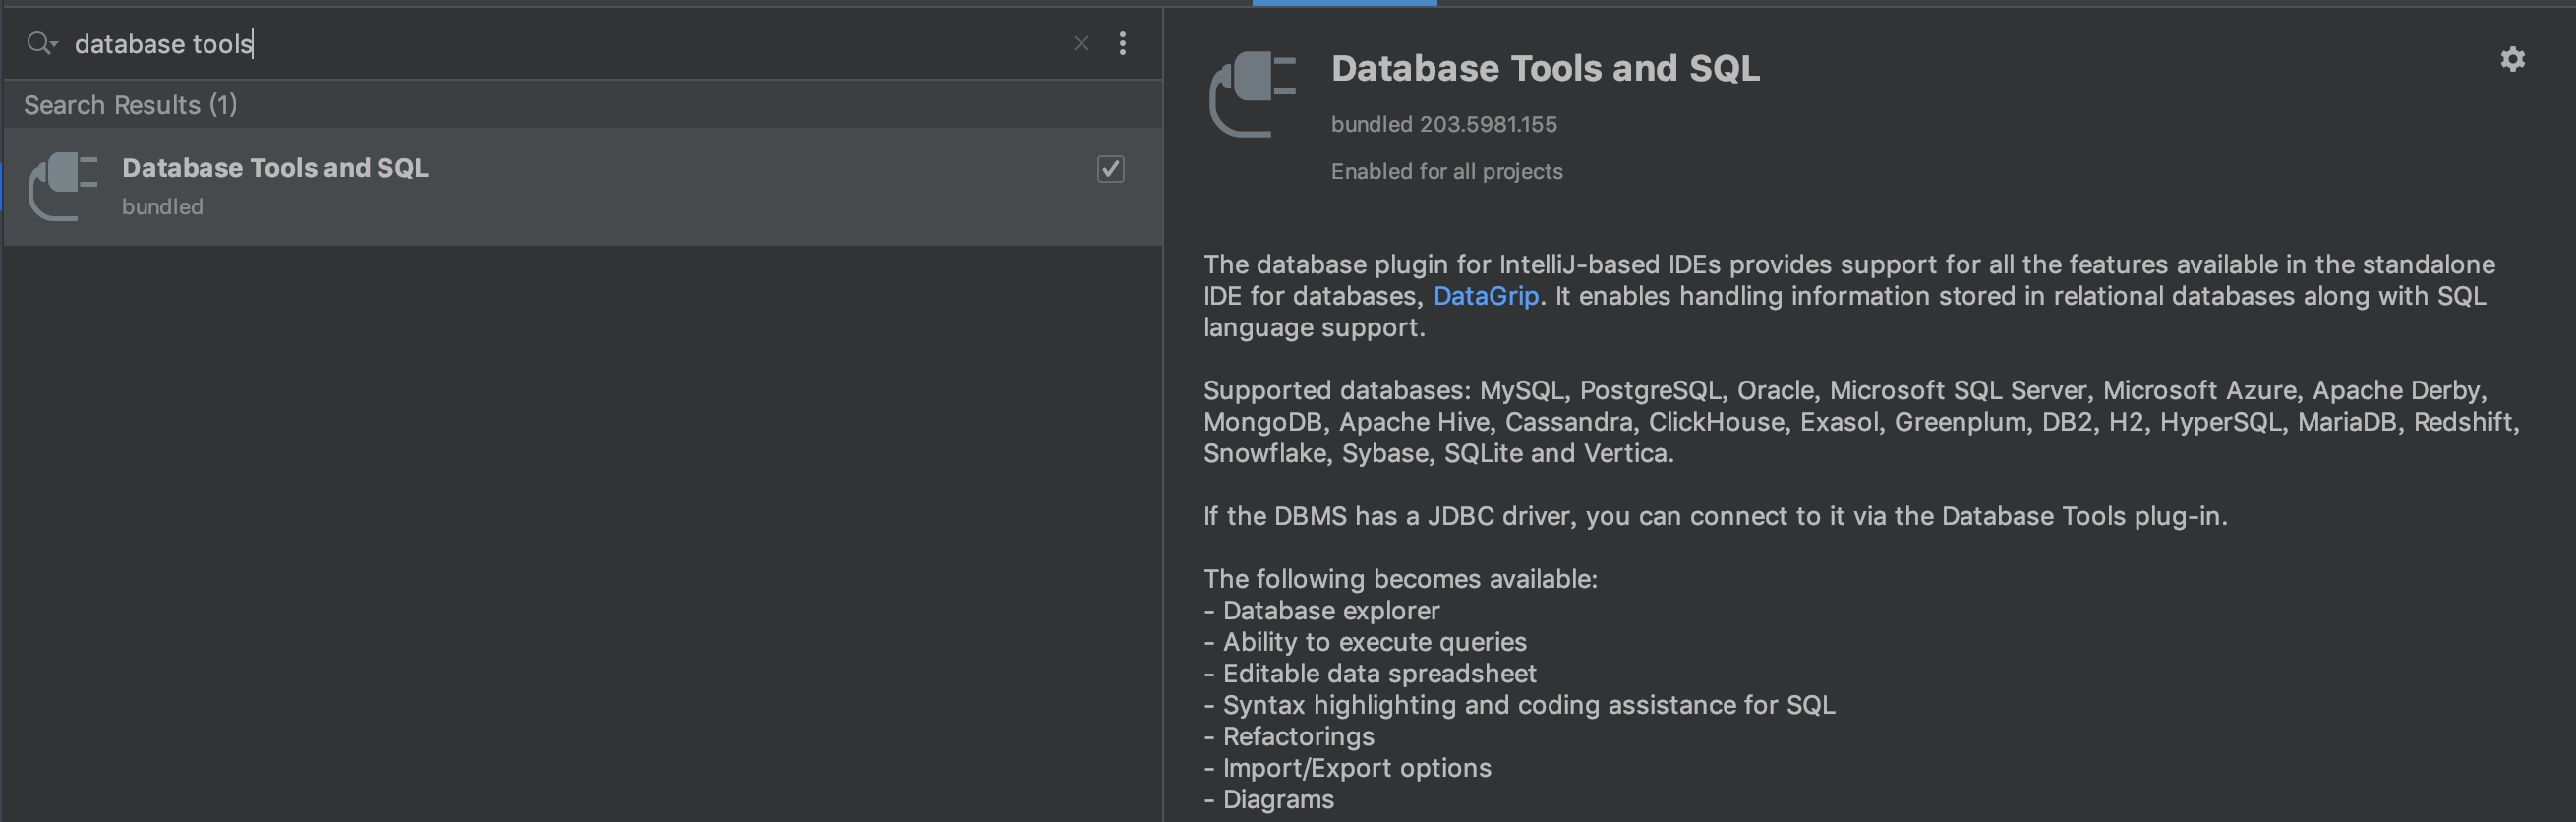 Database Tools and SQL